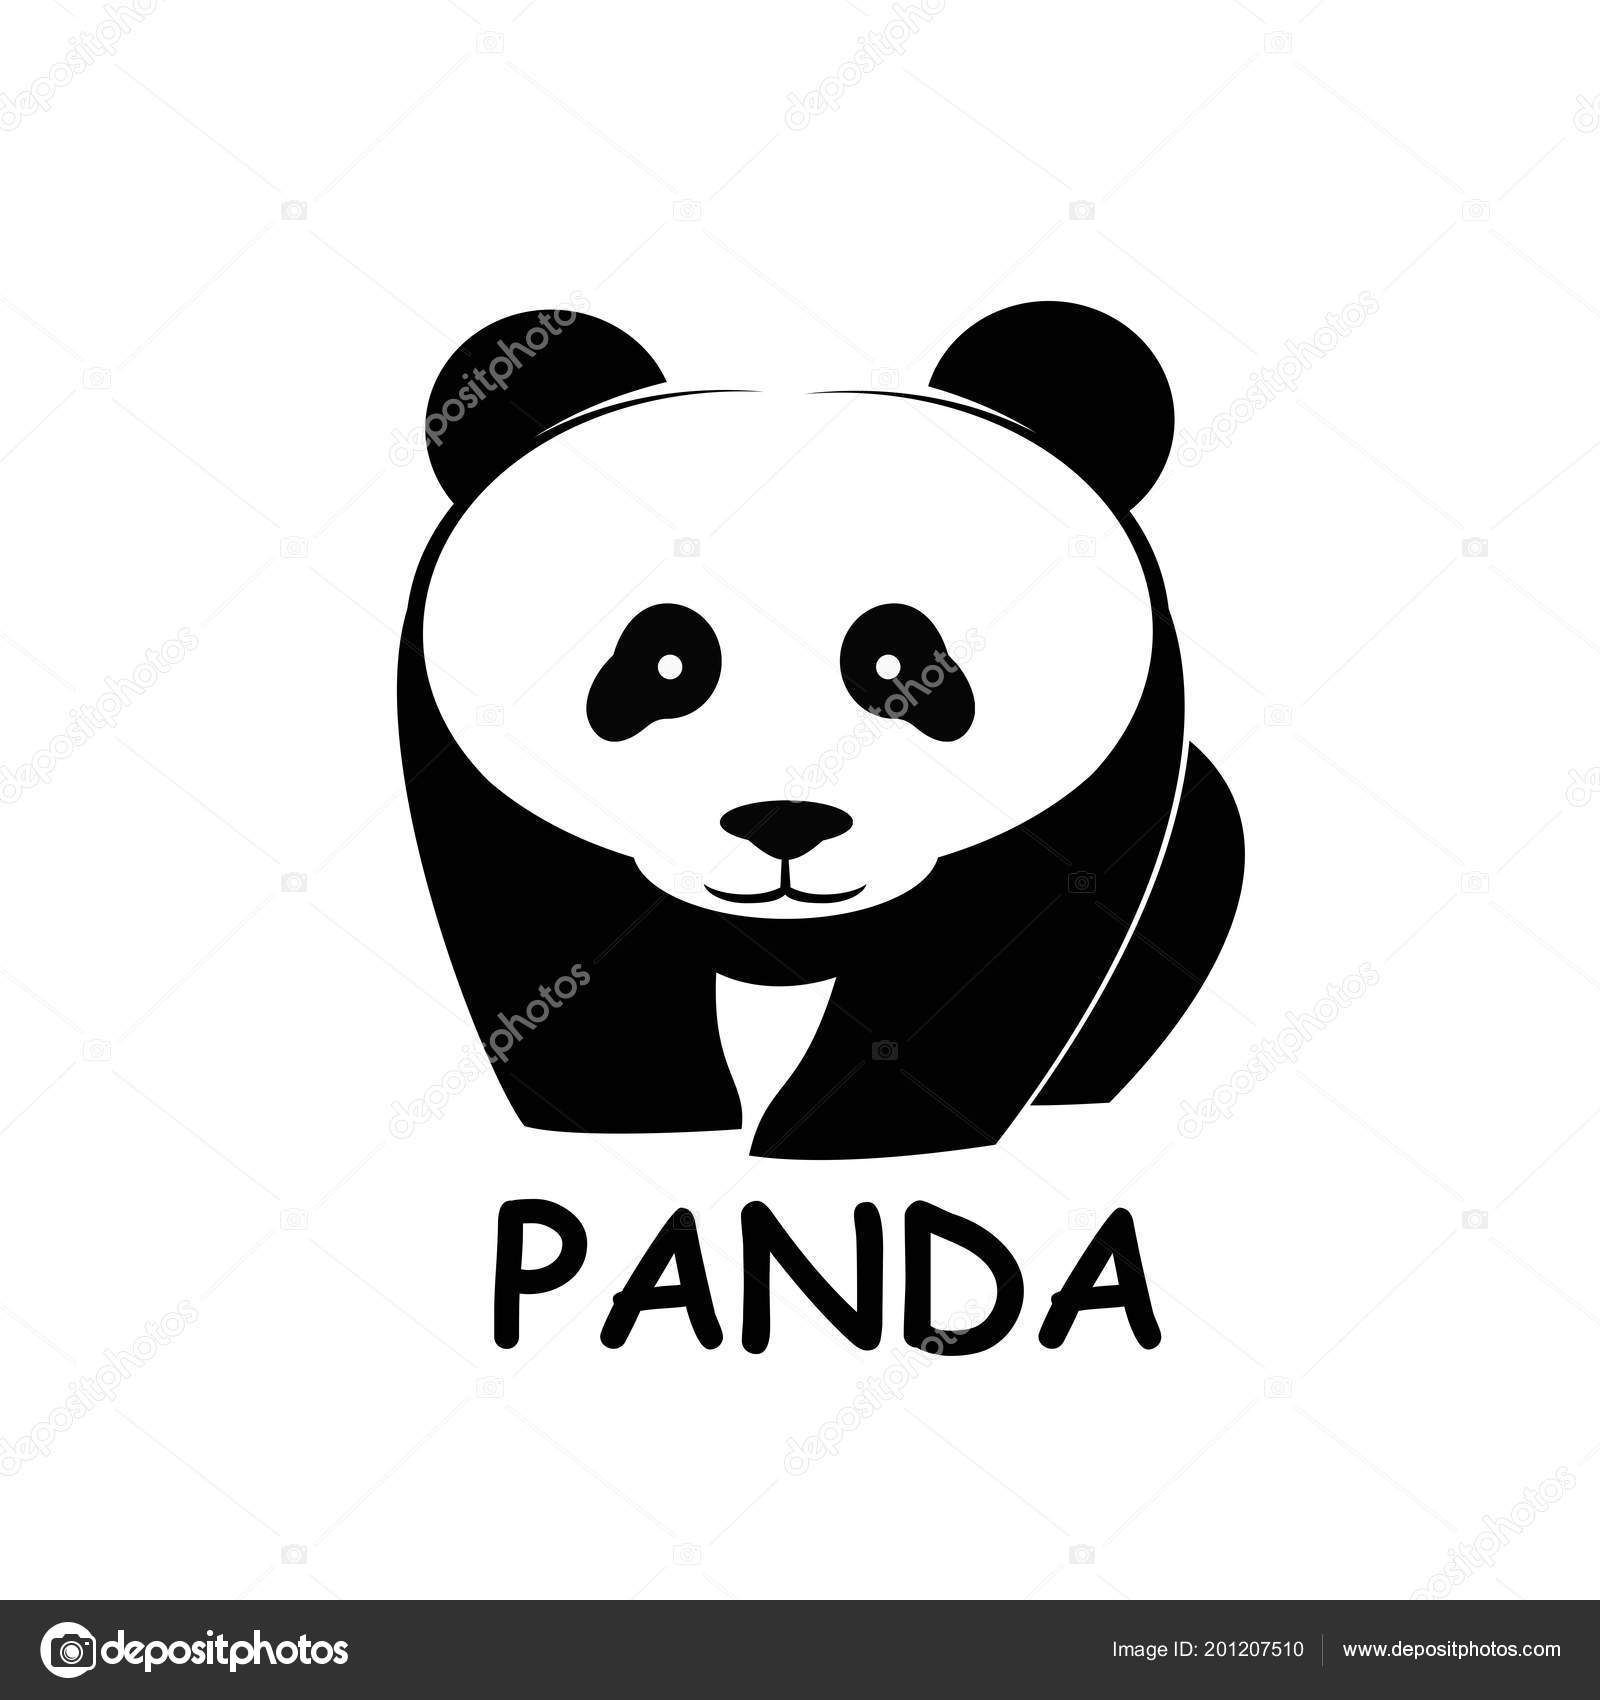 panda bear silhouette logo design vector template animal logotype